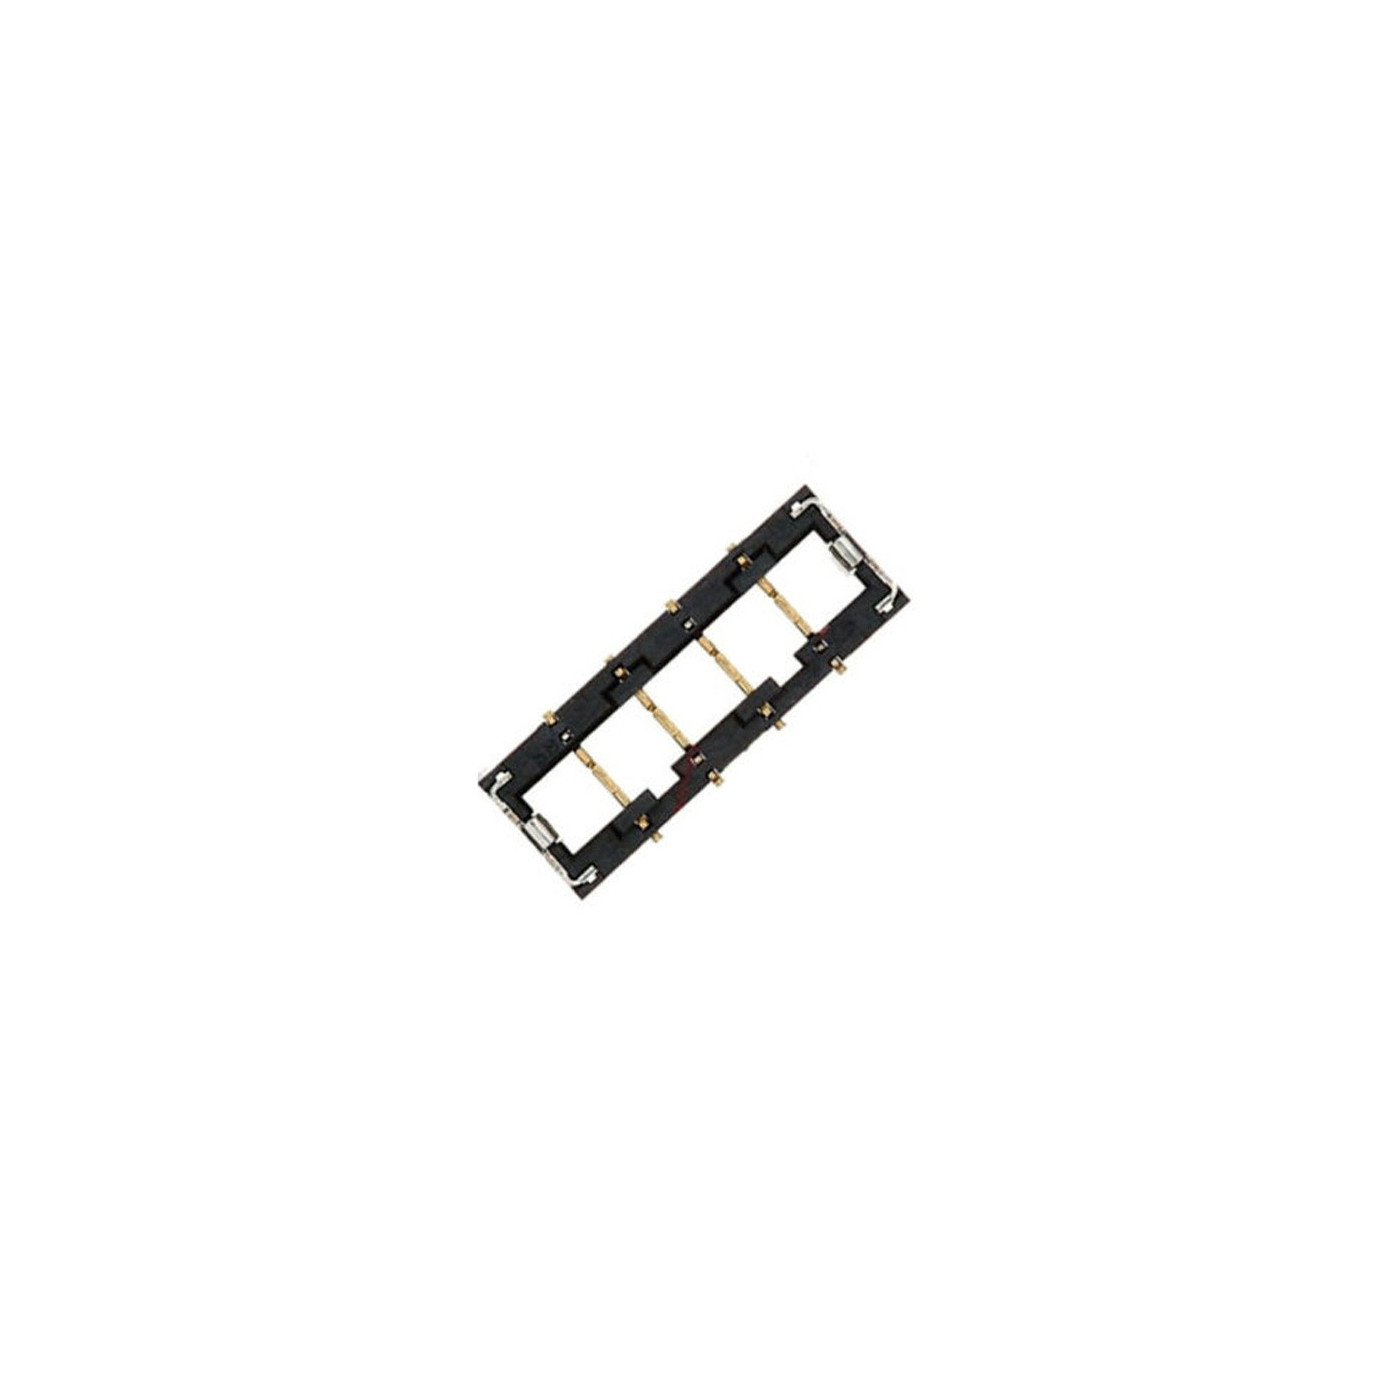 Battery Connector Iphone 5S - 5E welded Battery Connector Contacts